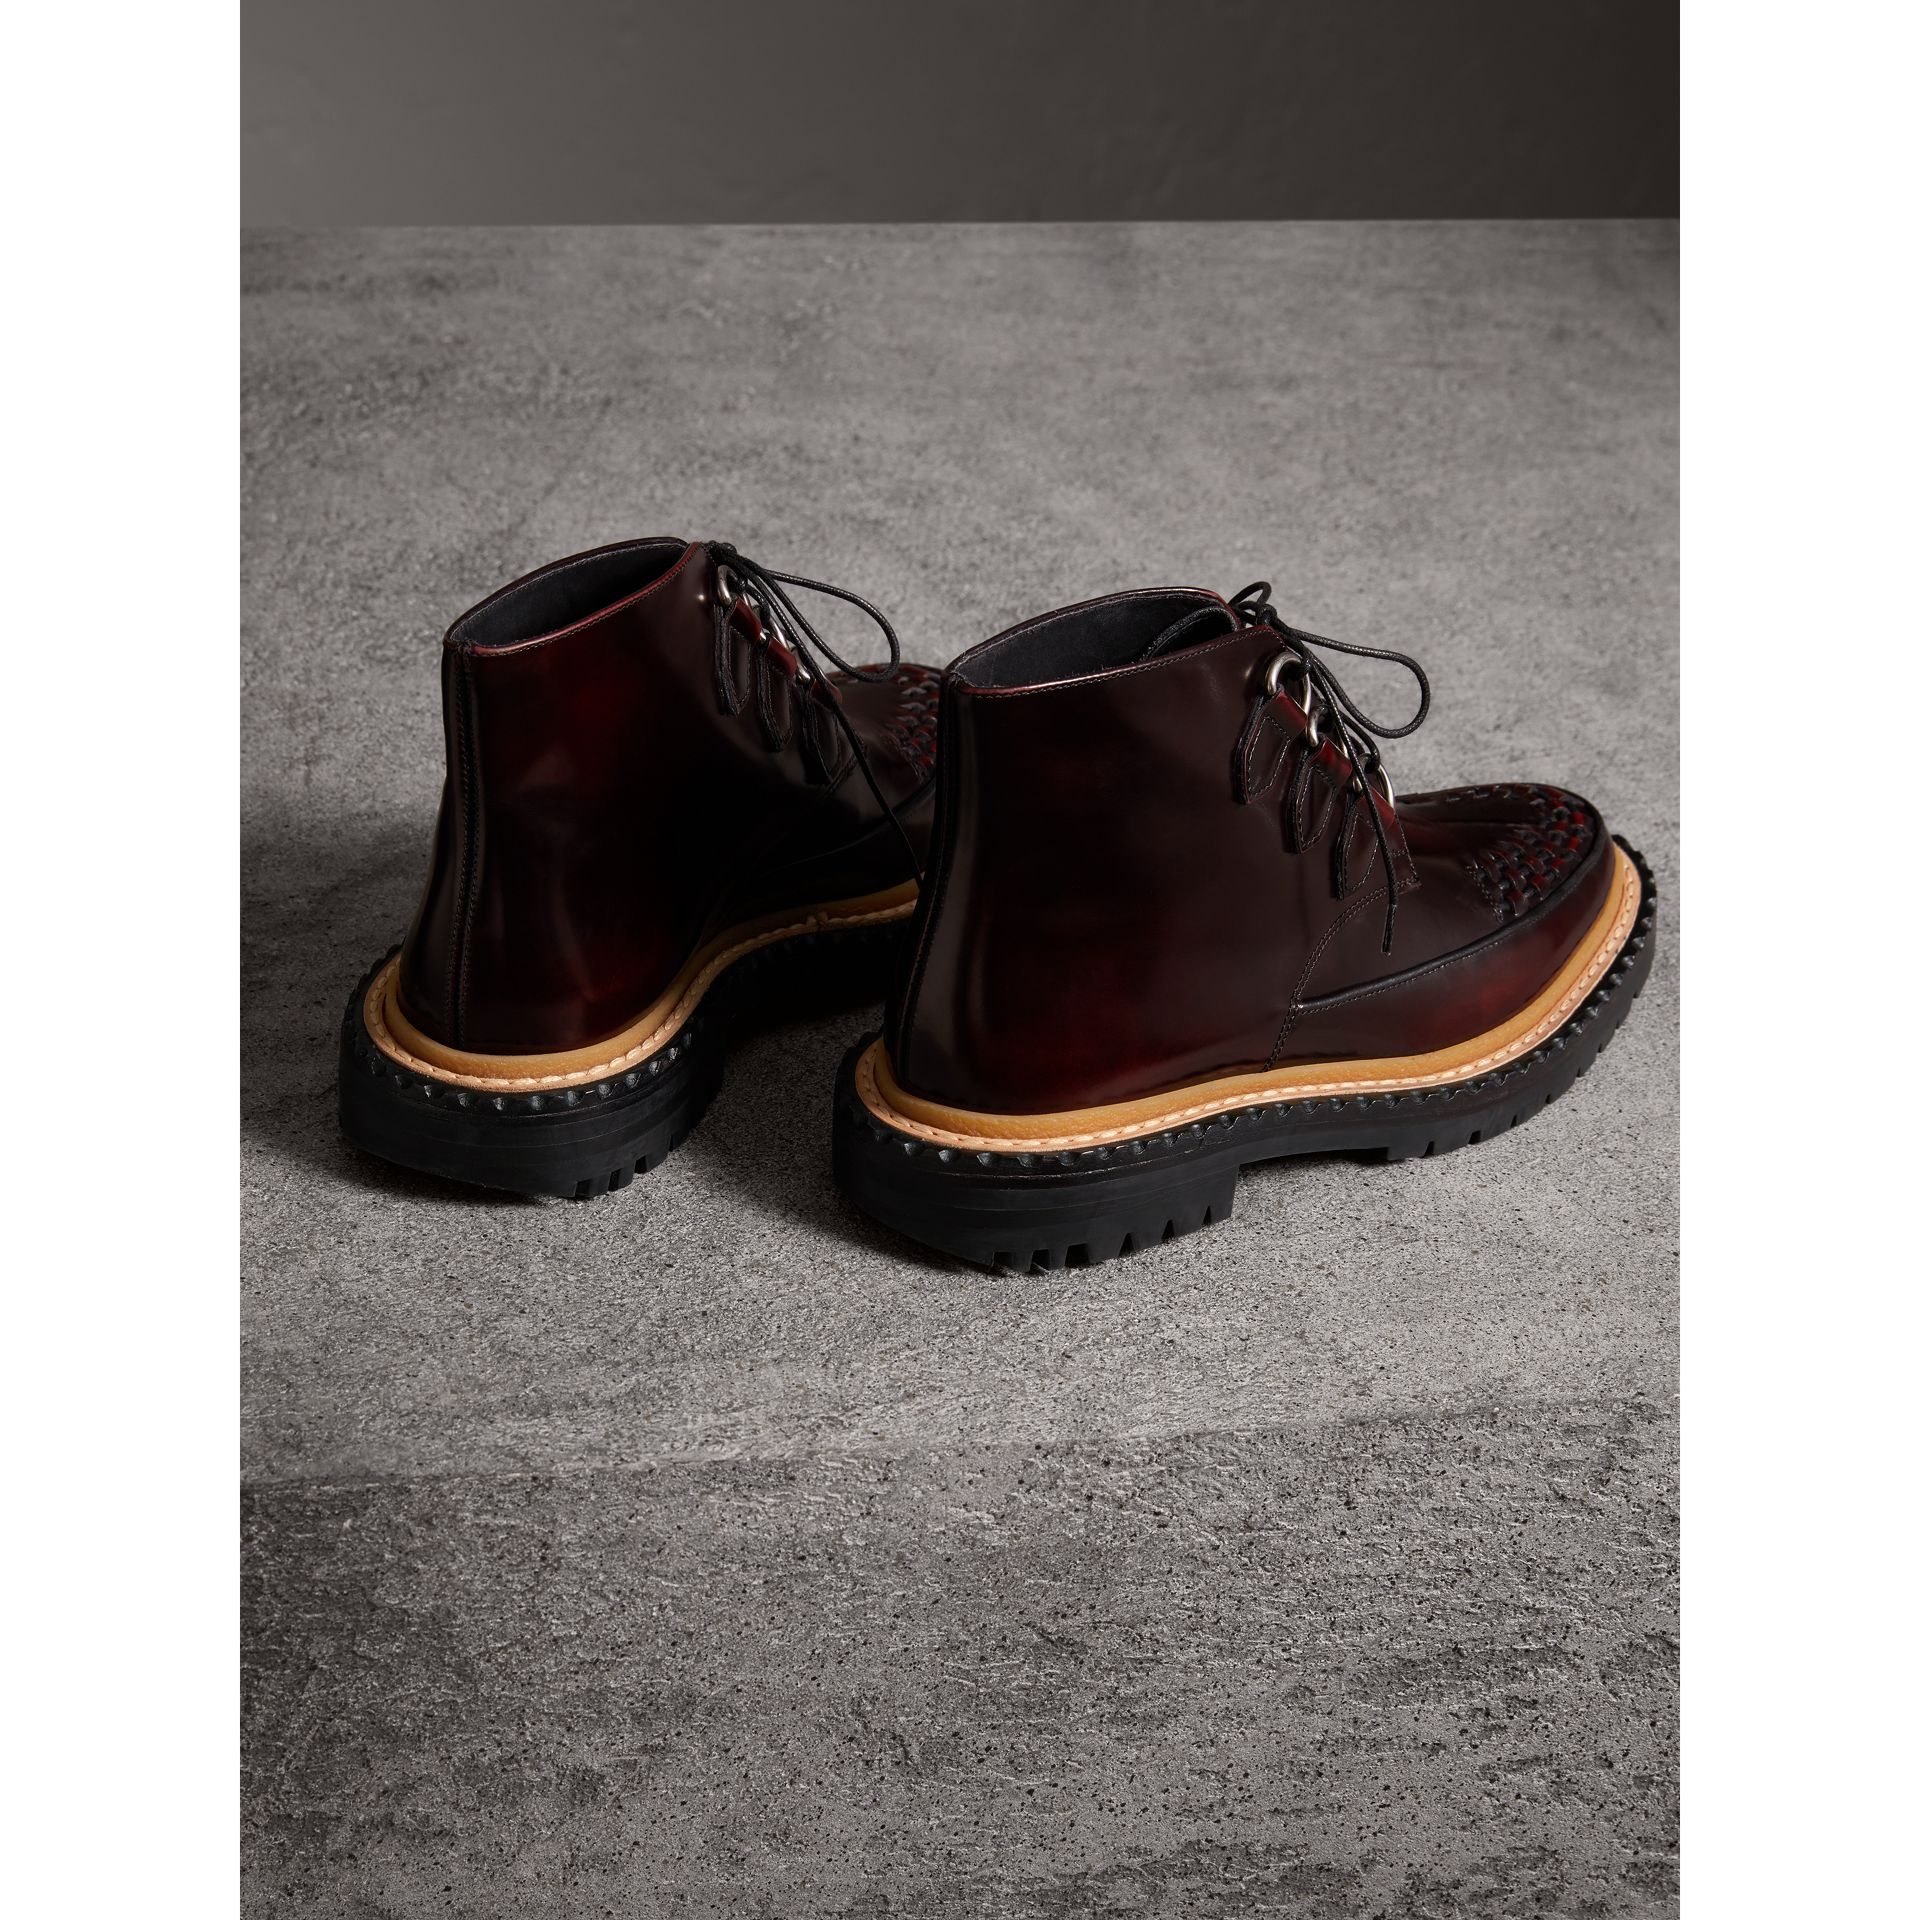 Woven-toe Polished Leather Ankle Boots in Bordeaux - Women | Burberry Singapore - gallery image 2